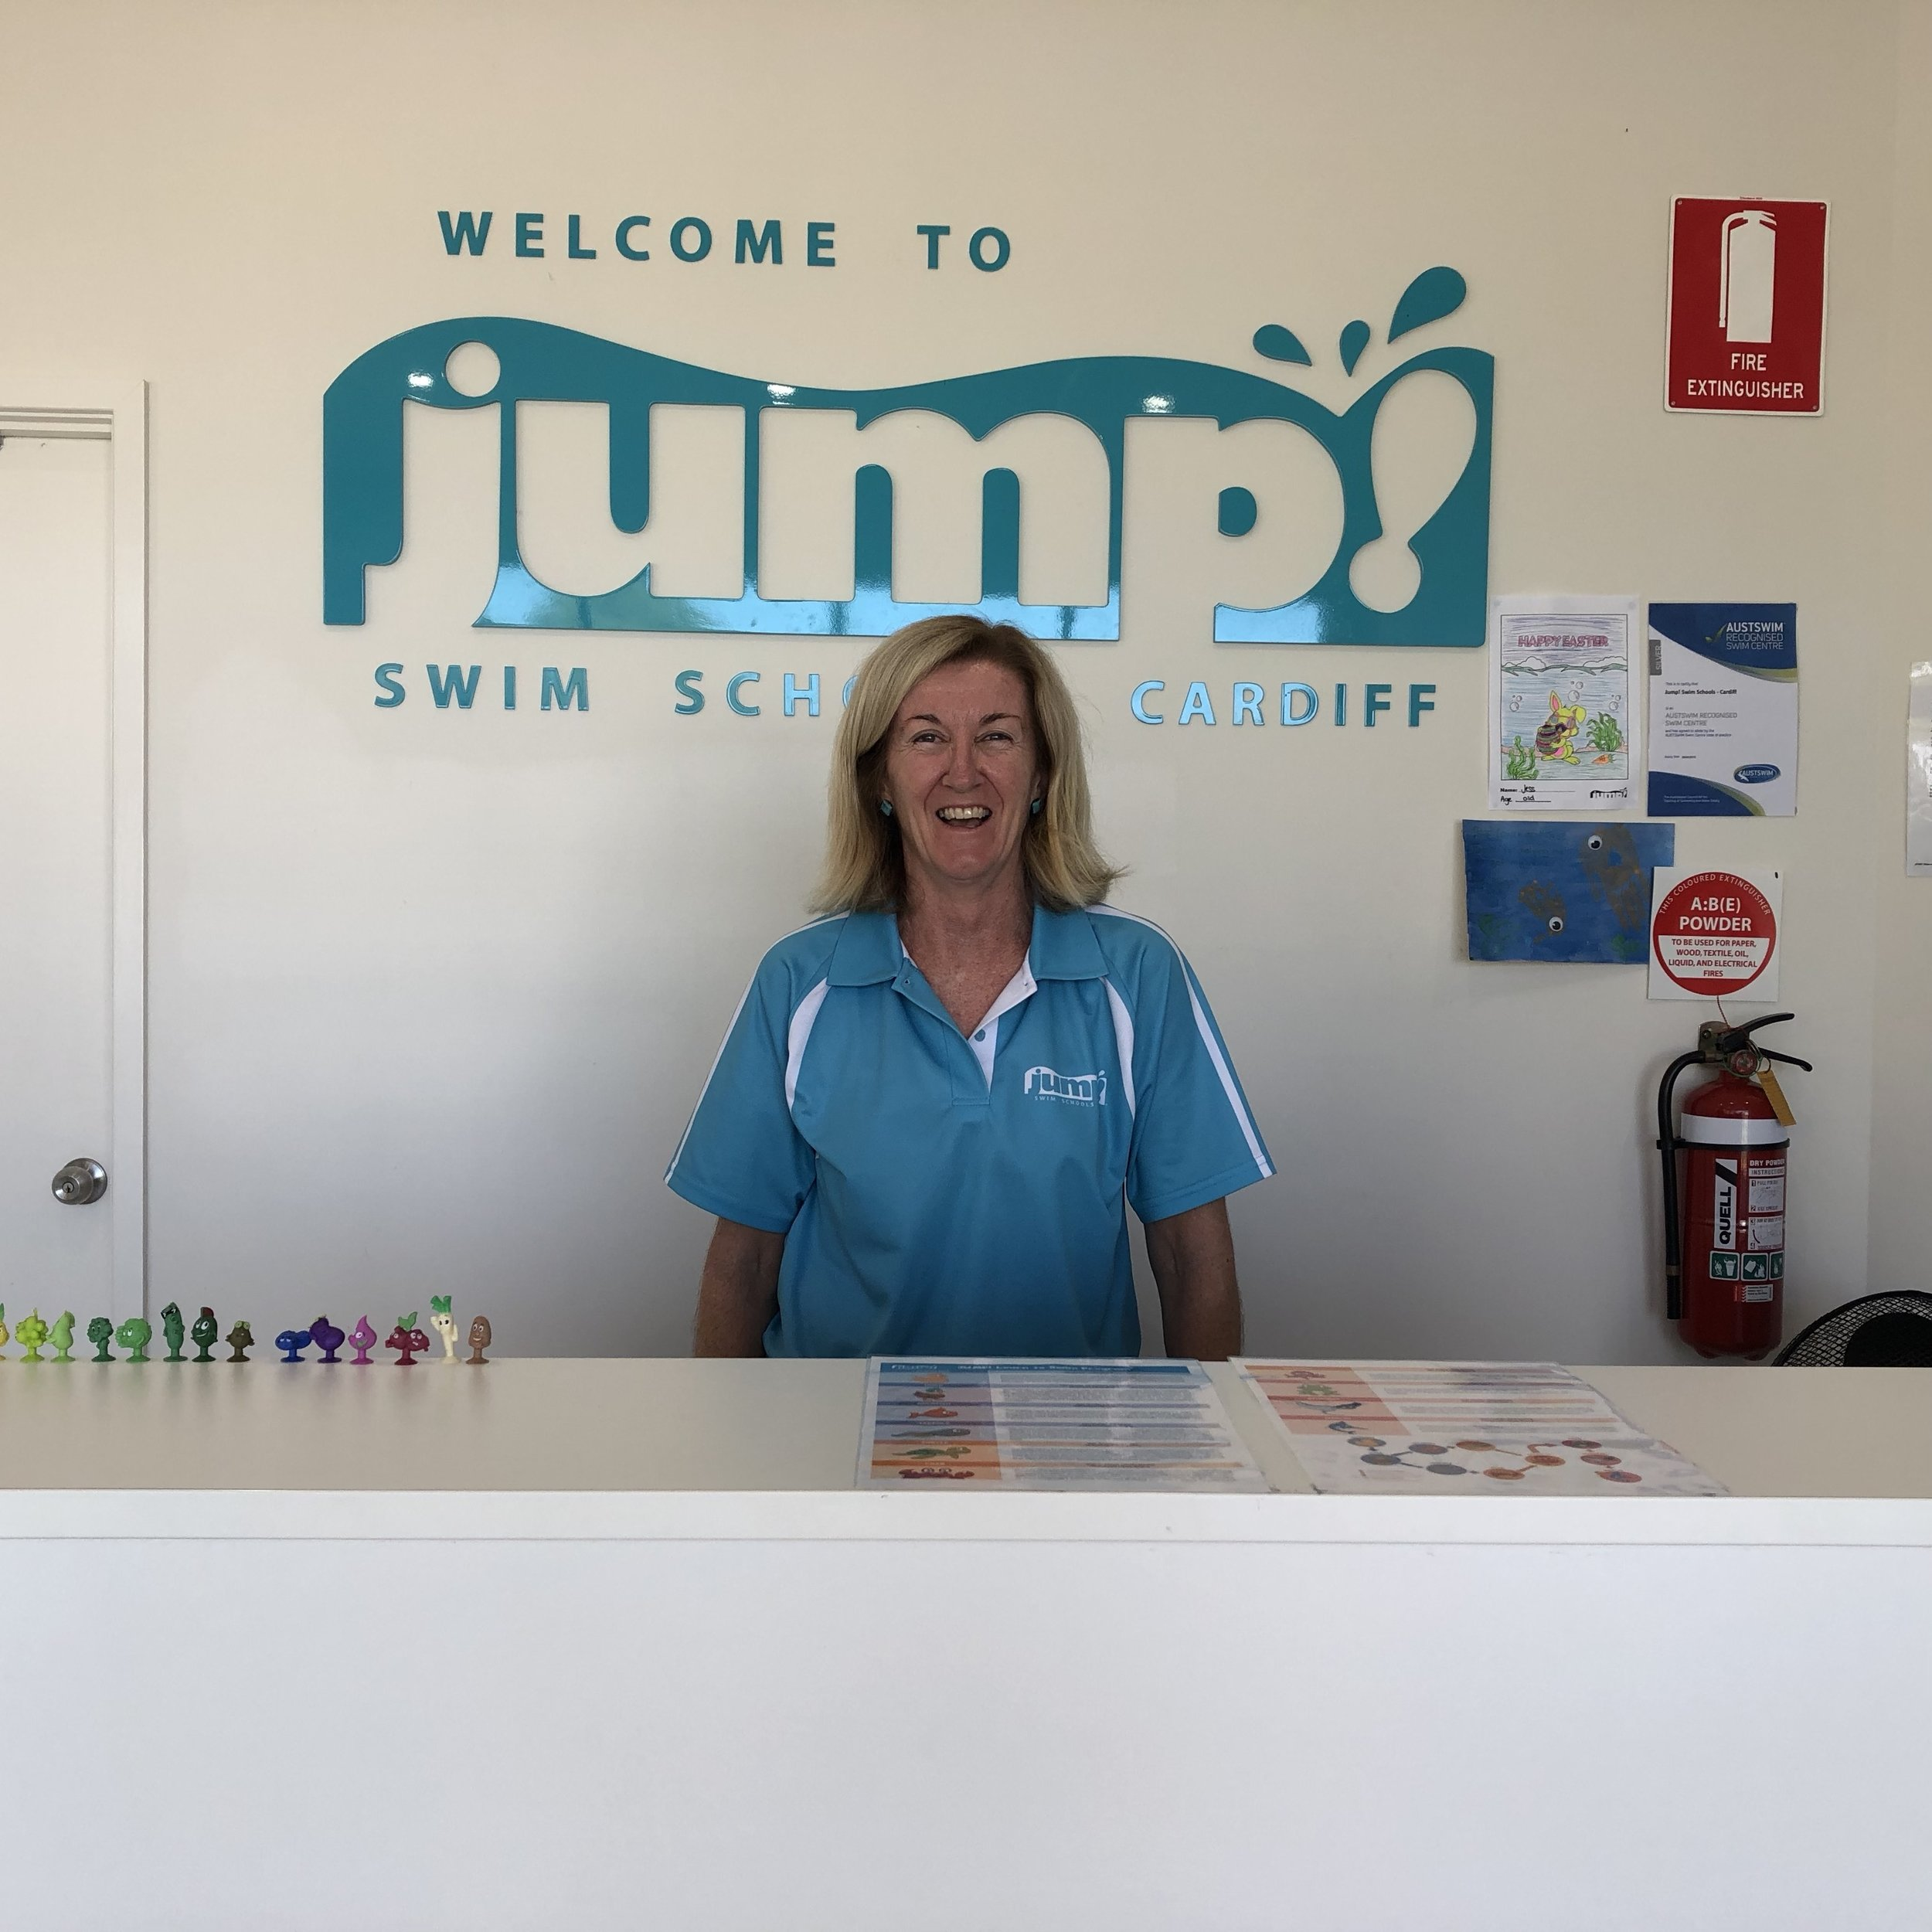 """A friendly, familiar face at reception is an essential element of success."" Louise, franchise owner at Jump! Swim School Cardiff. And Louise actually does smile while she is at work."